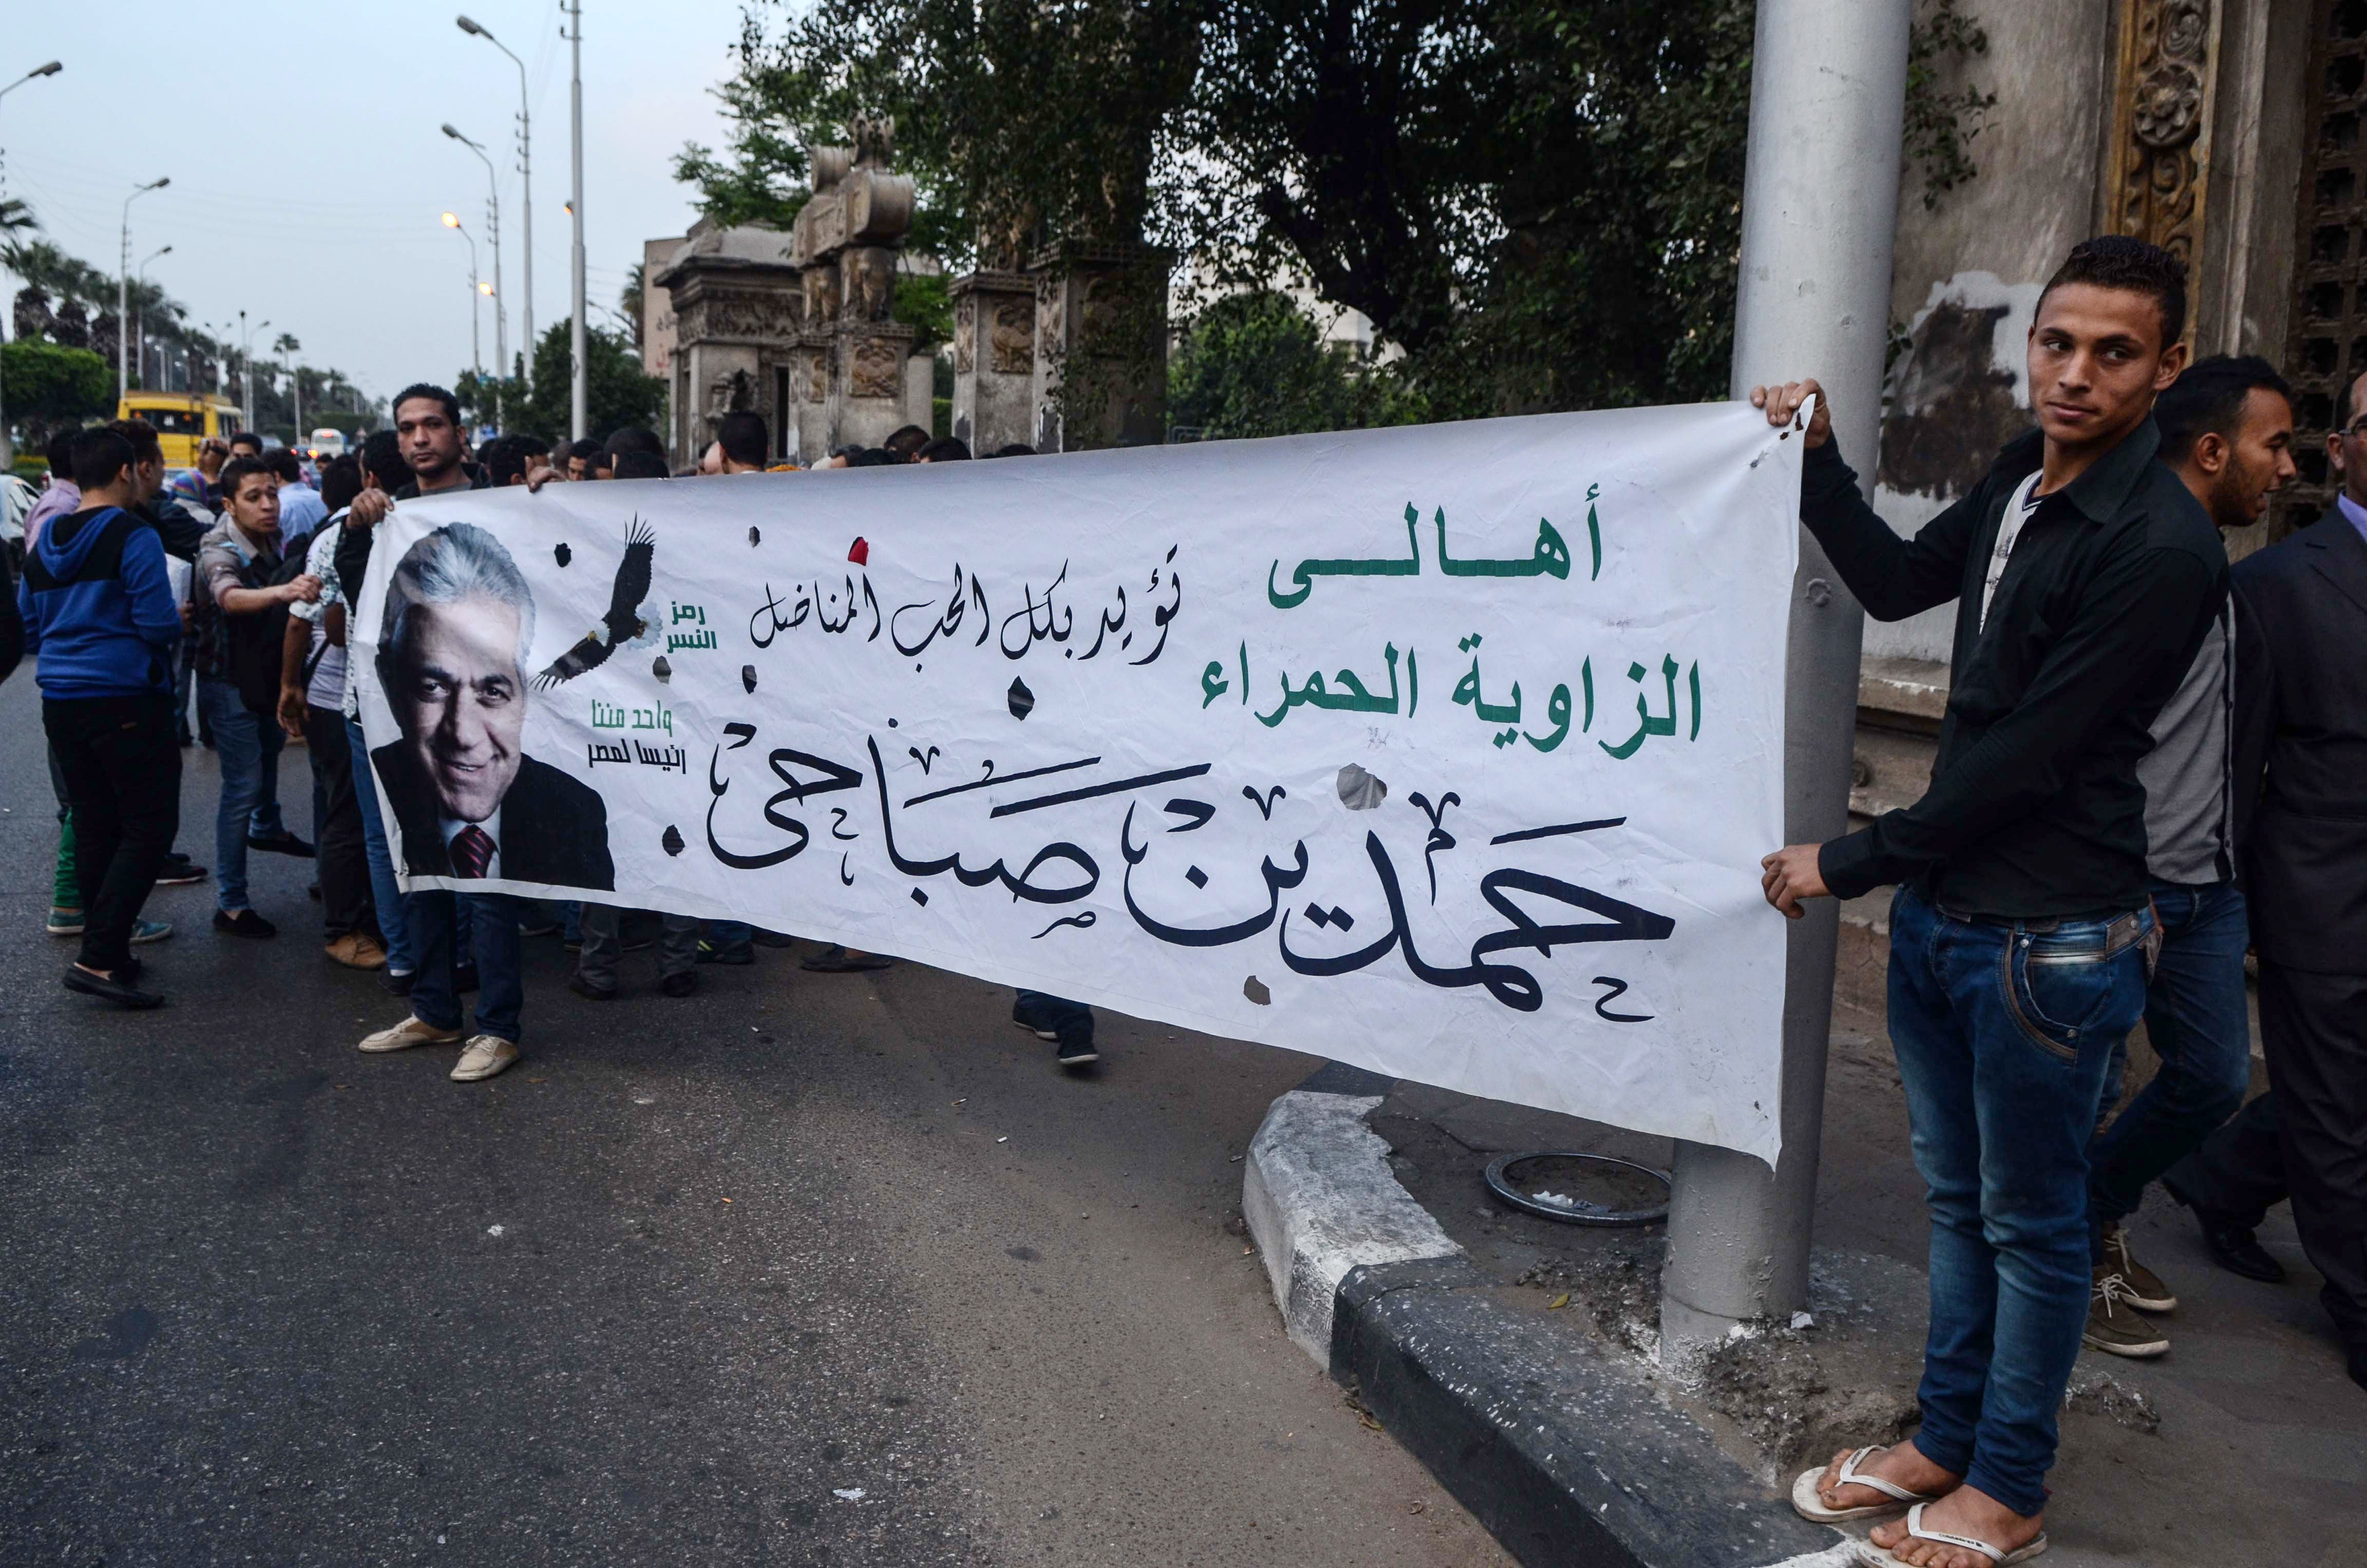 Supporters of Egyptian presidential hopeful Hamdeen Sabbahi hold a banner in his support on March 29, 2014 in the Egyptian capital Cairo. Egypt's army chief Abdel Fattah al-Sisi is assured of winning Egypt's forthcoming presidential vote but at the cost of reviving the era of strongman rule as he faces a dilapidated economy and rising militancy.   (AFP PHOTO / MOHAMED EL-SHAHED)